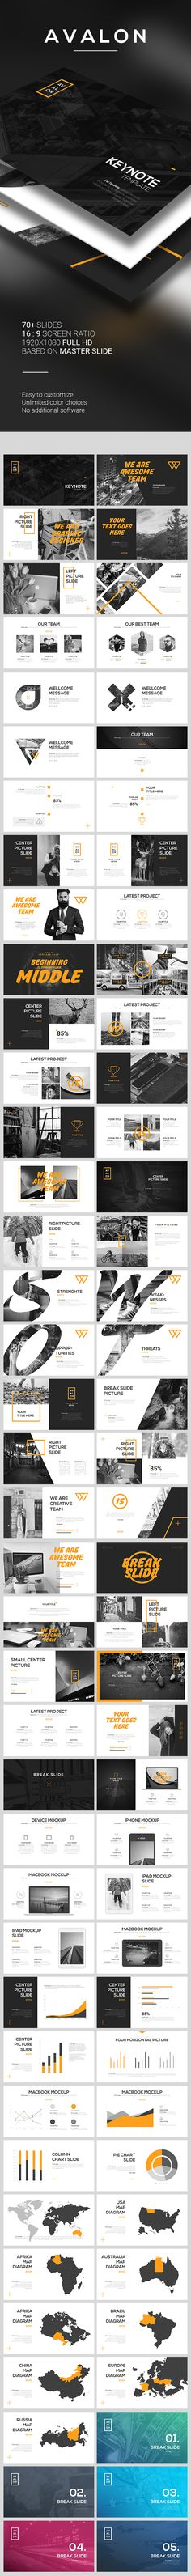 AVALON Keynote Template - Keynote Templates Presentation Templates